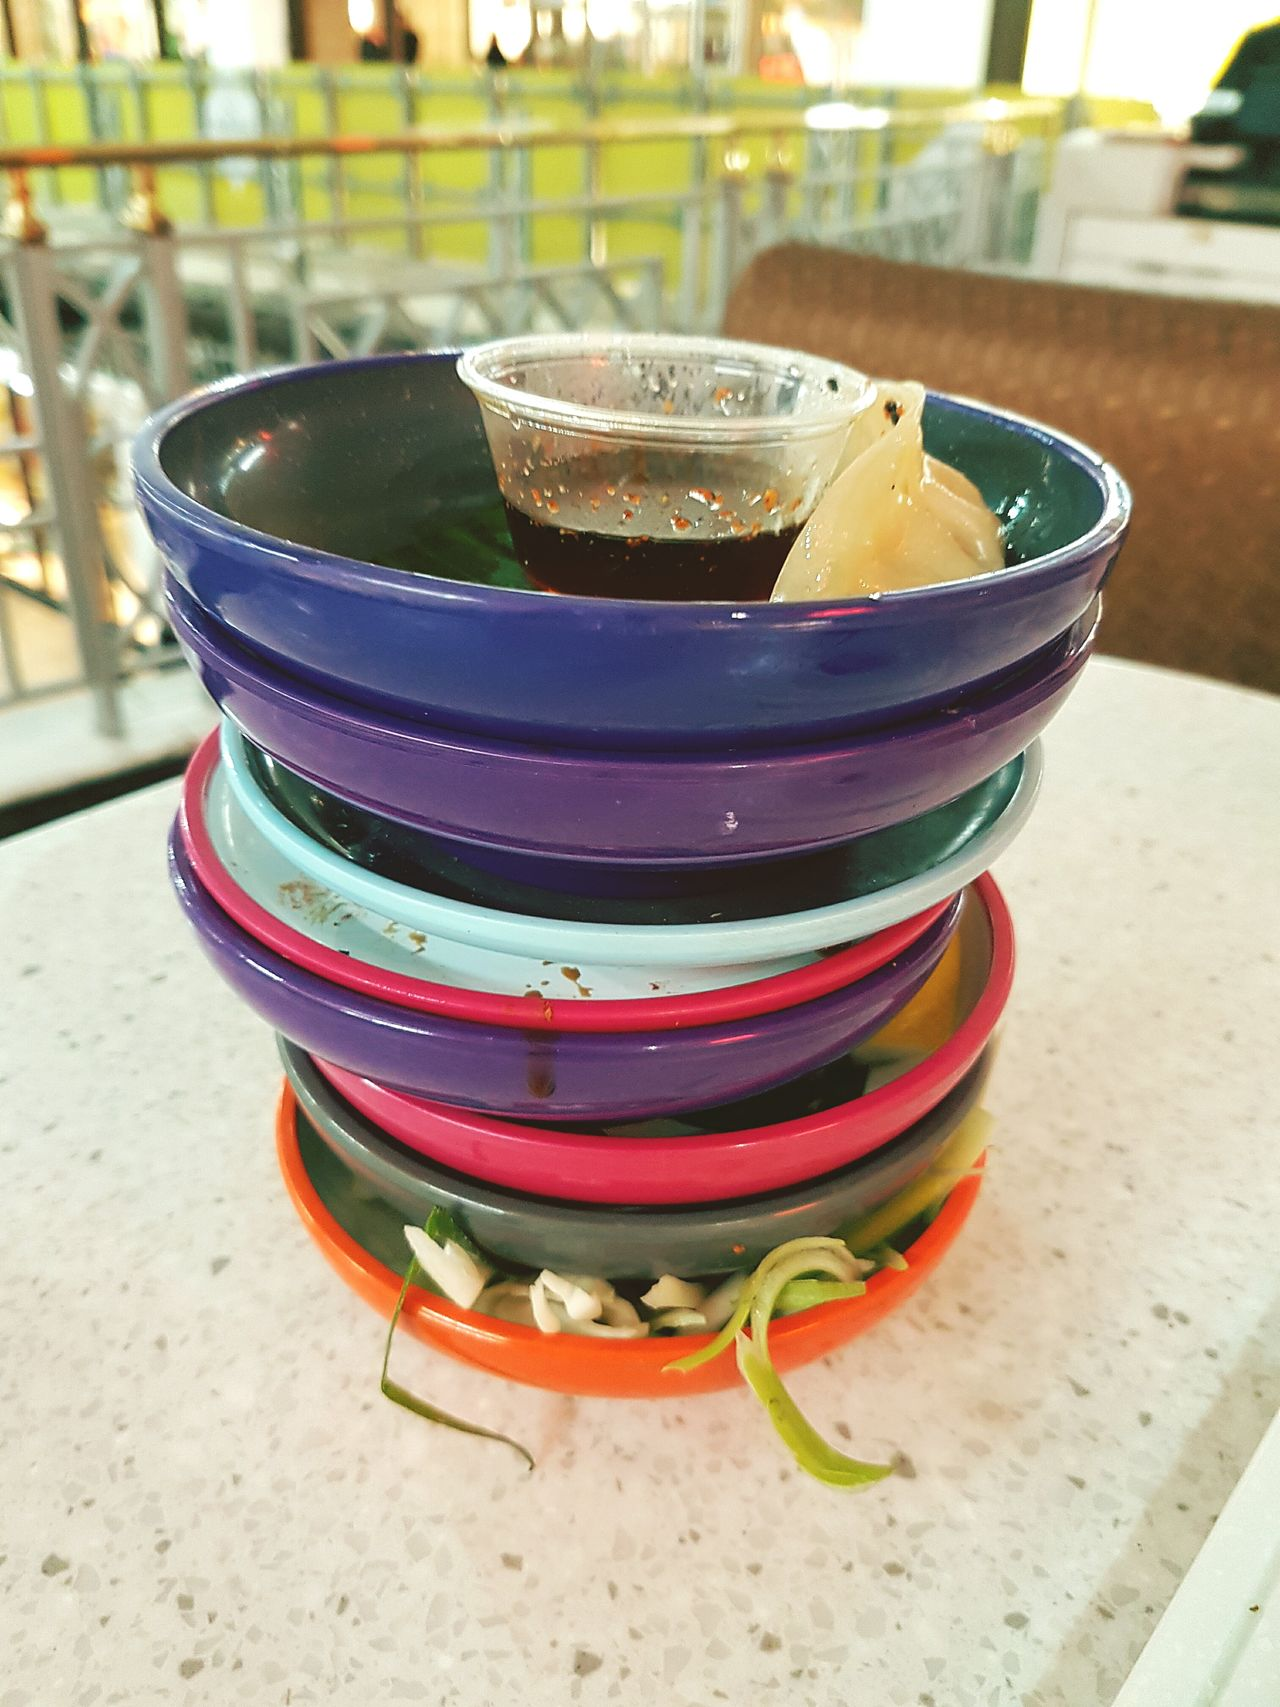 Multi Colored Plates Dishes Food Sushi Yo Sushi Yo! Sushi